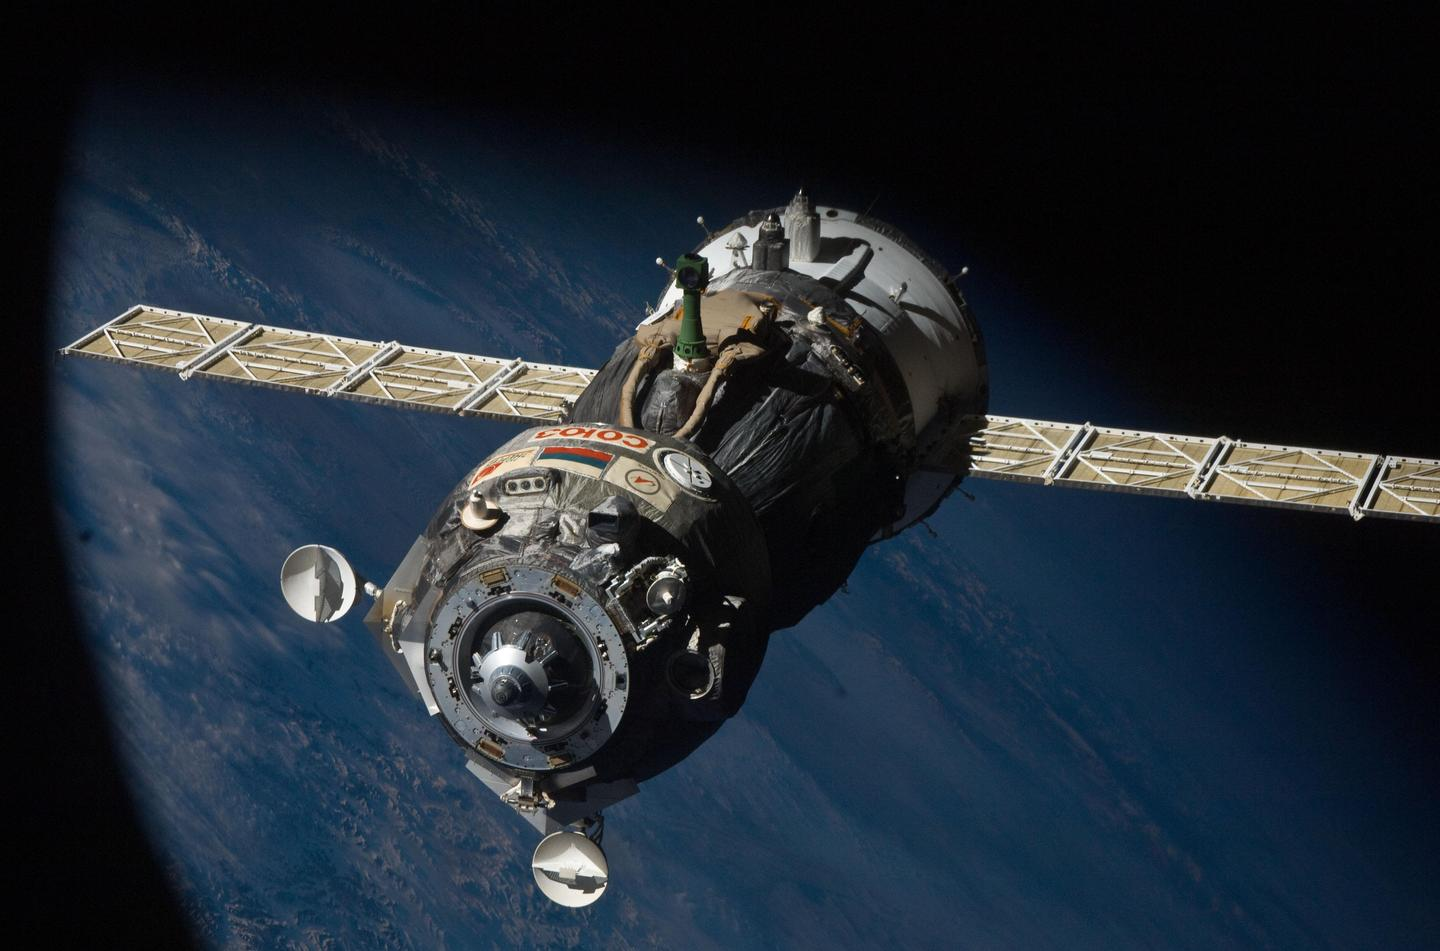 NASA's dependence on the Russian Soyuz spacecraft (pictured) to send astronauts to the ISS will cause problems after NASA cut ties with Russia